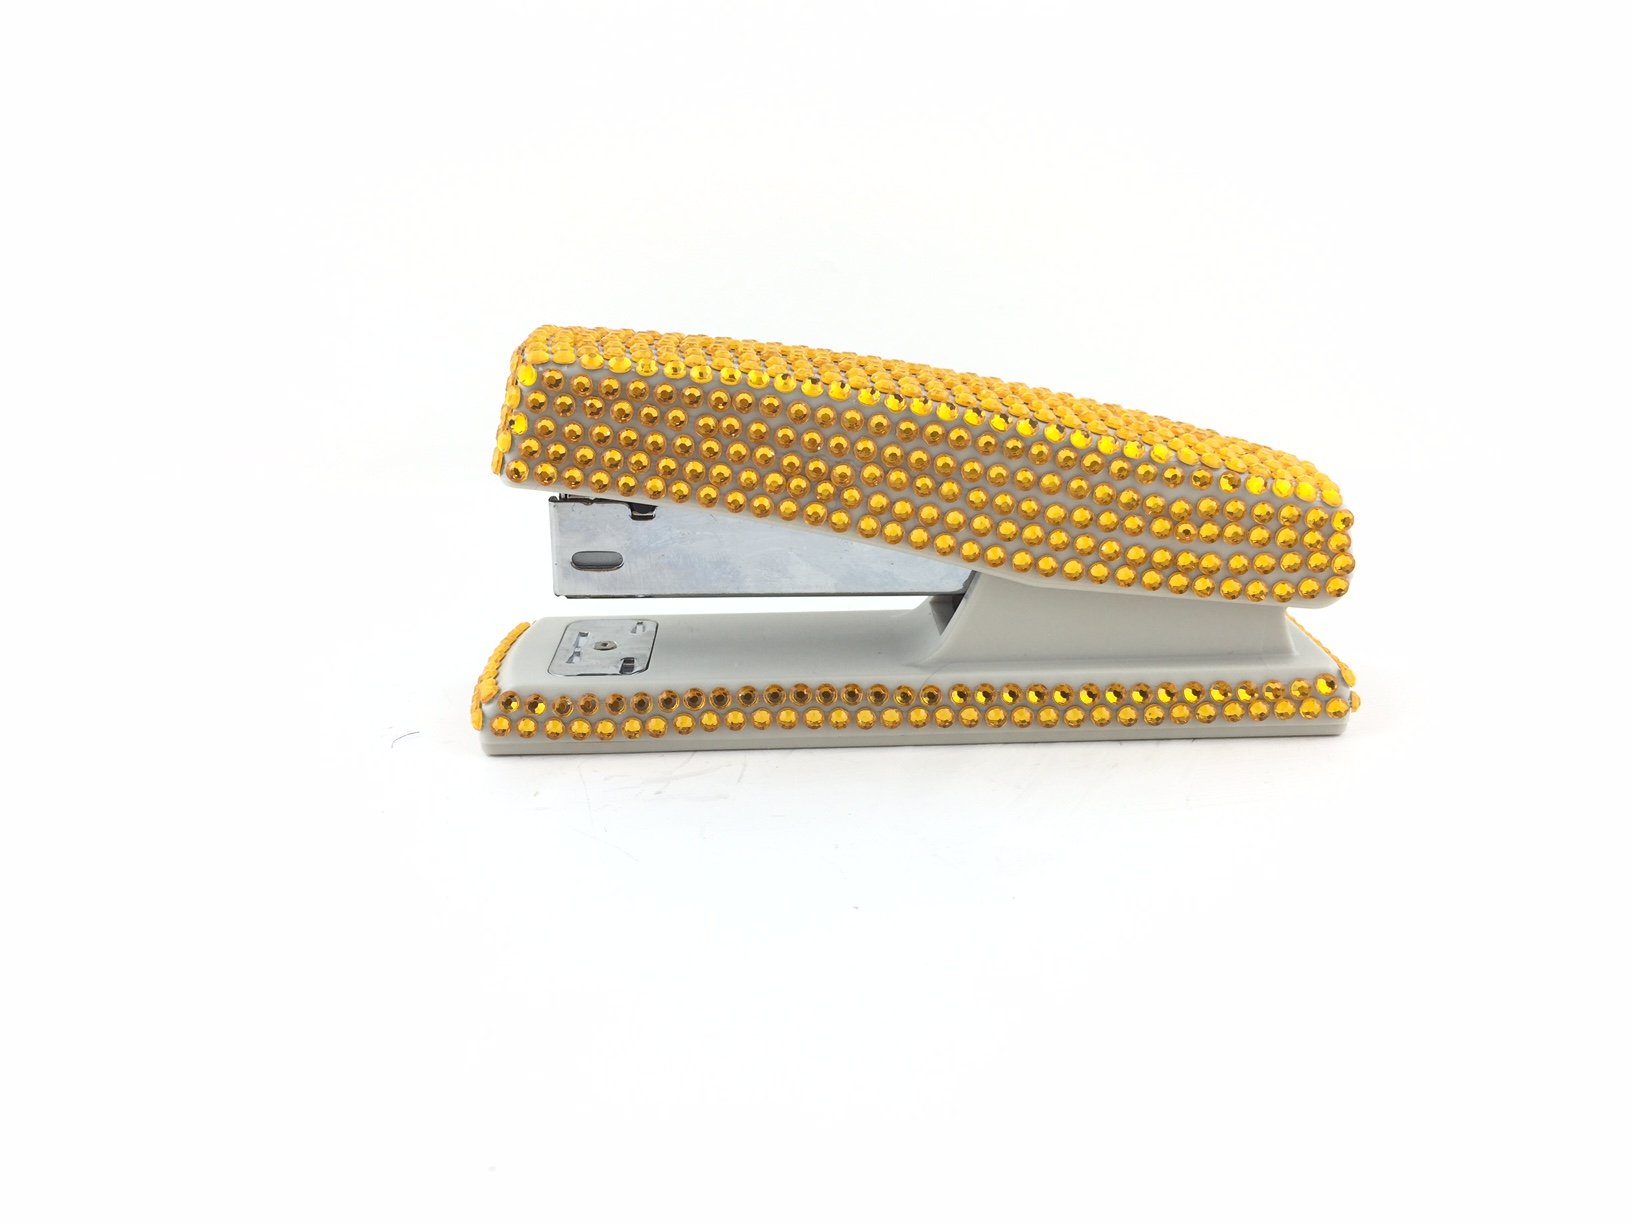 blingustyle Sparkly Diamante Crystal Stapler For Office/Home Gold by blingustyle (Image #1)